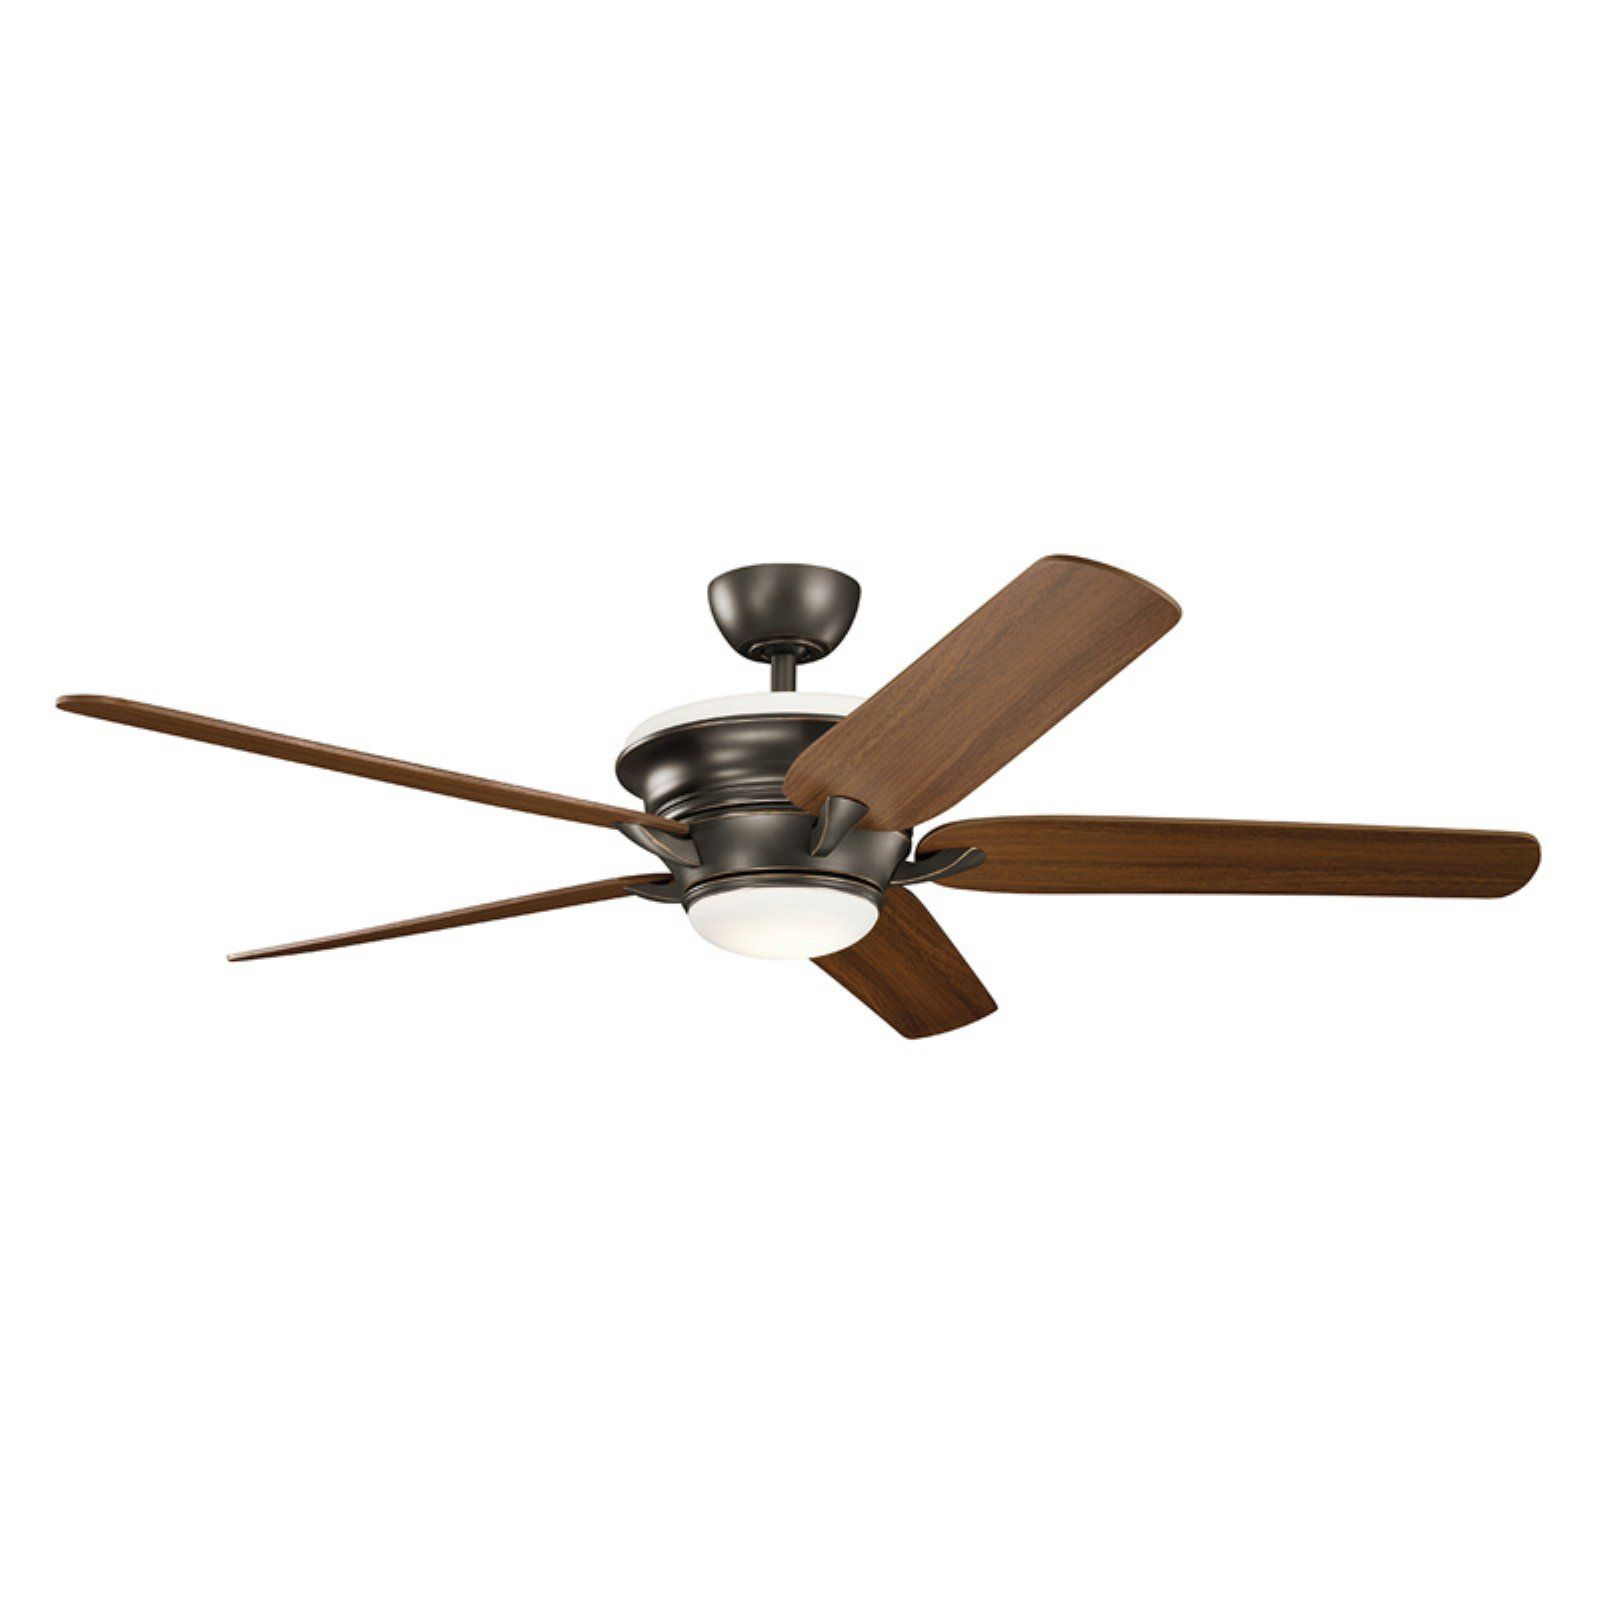 Large Indoor Fans Kichler Pino 60 In Indoor Ceiling Fan In 2019 Products